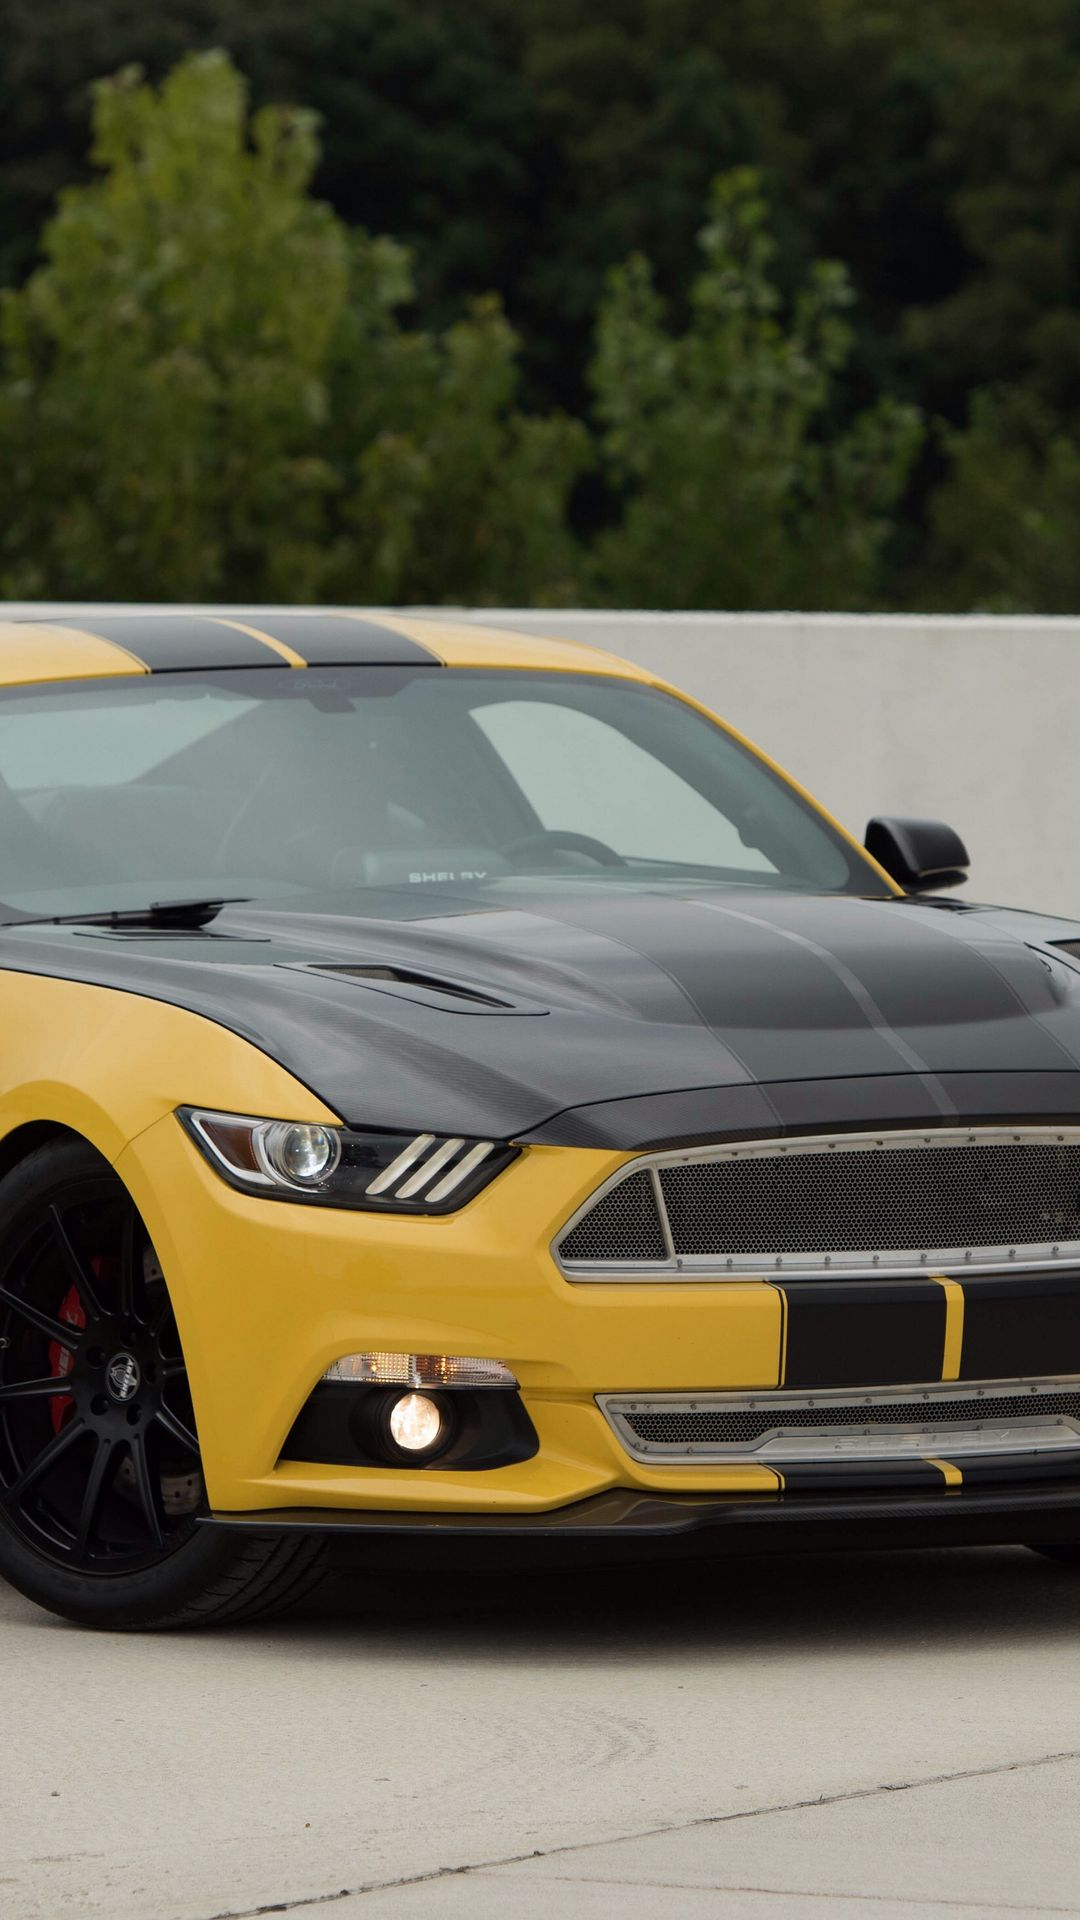 Ford Mustang Shelby GT Wallpapers Free Download